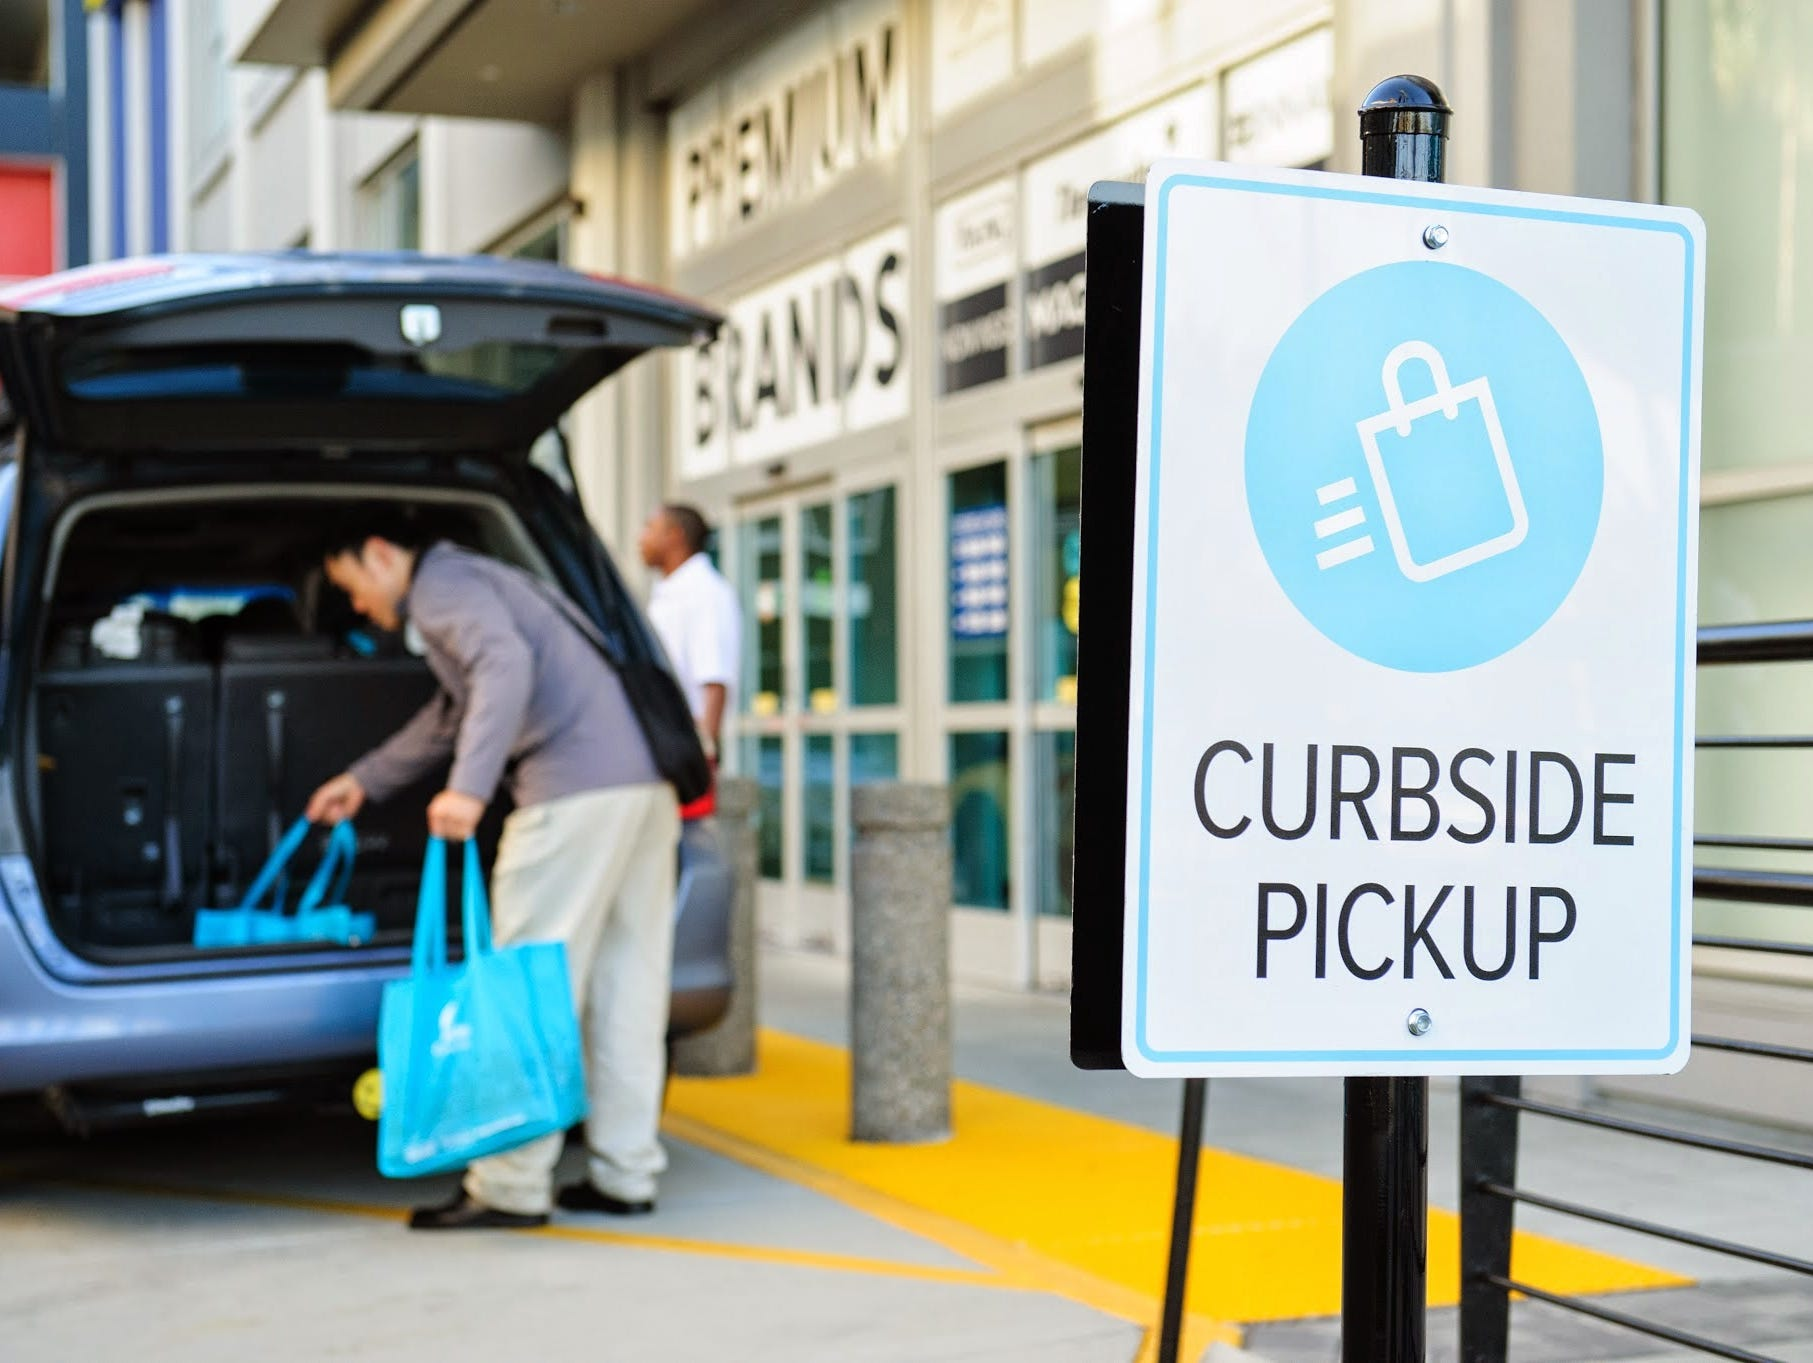 Curbside just locked down $25 million in Series B funding, which will help its pick-up service to expand beyond the Bay Area and the New York/New Jersey area.